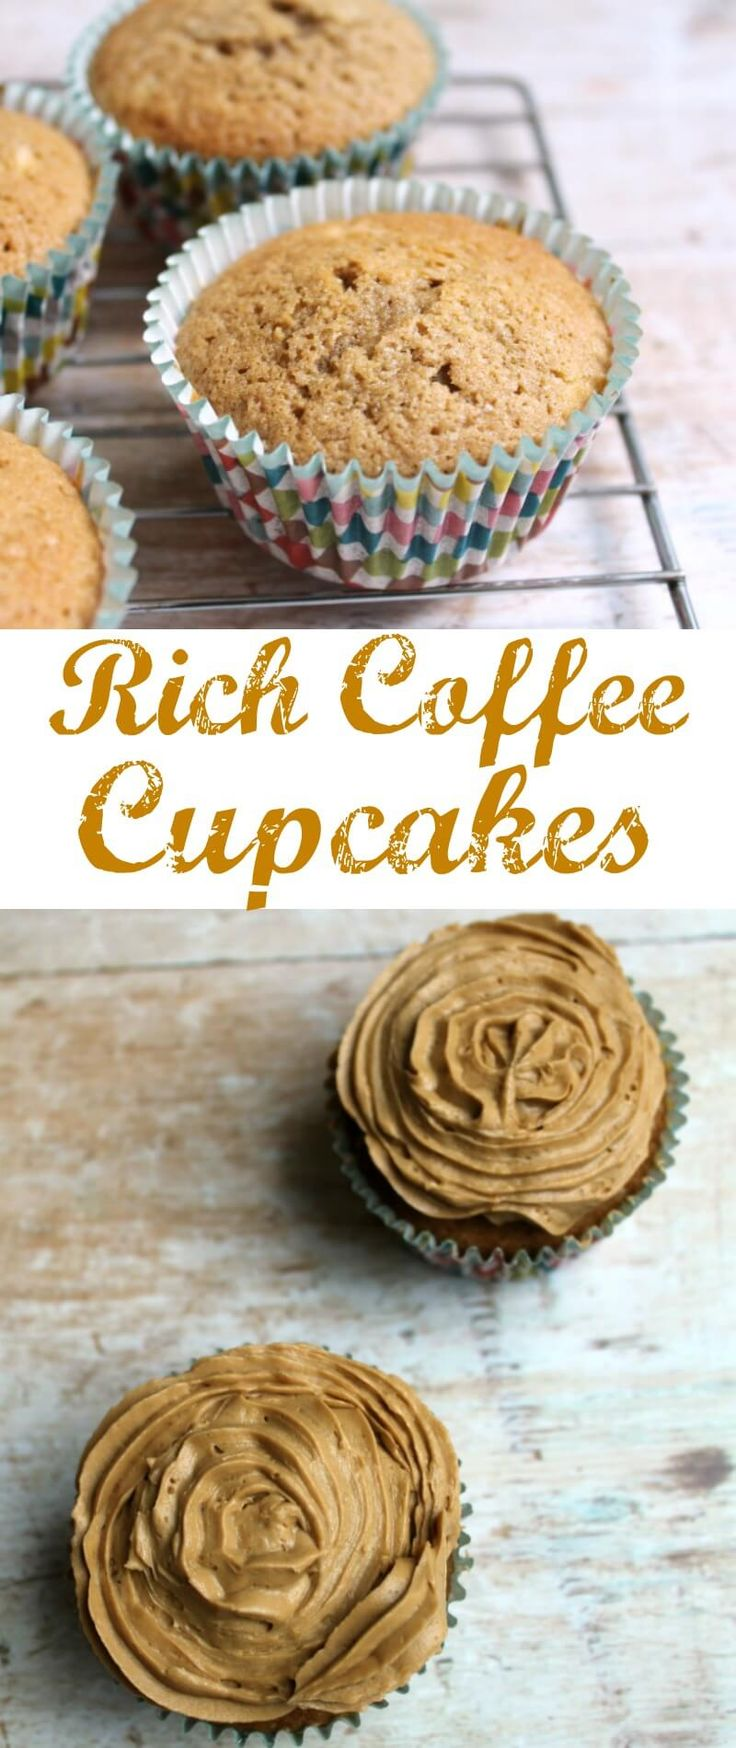 Rich coffee cupcakes with coffee icing - Coriander Queen recipe